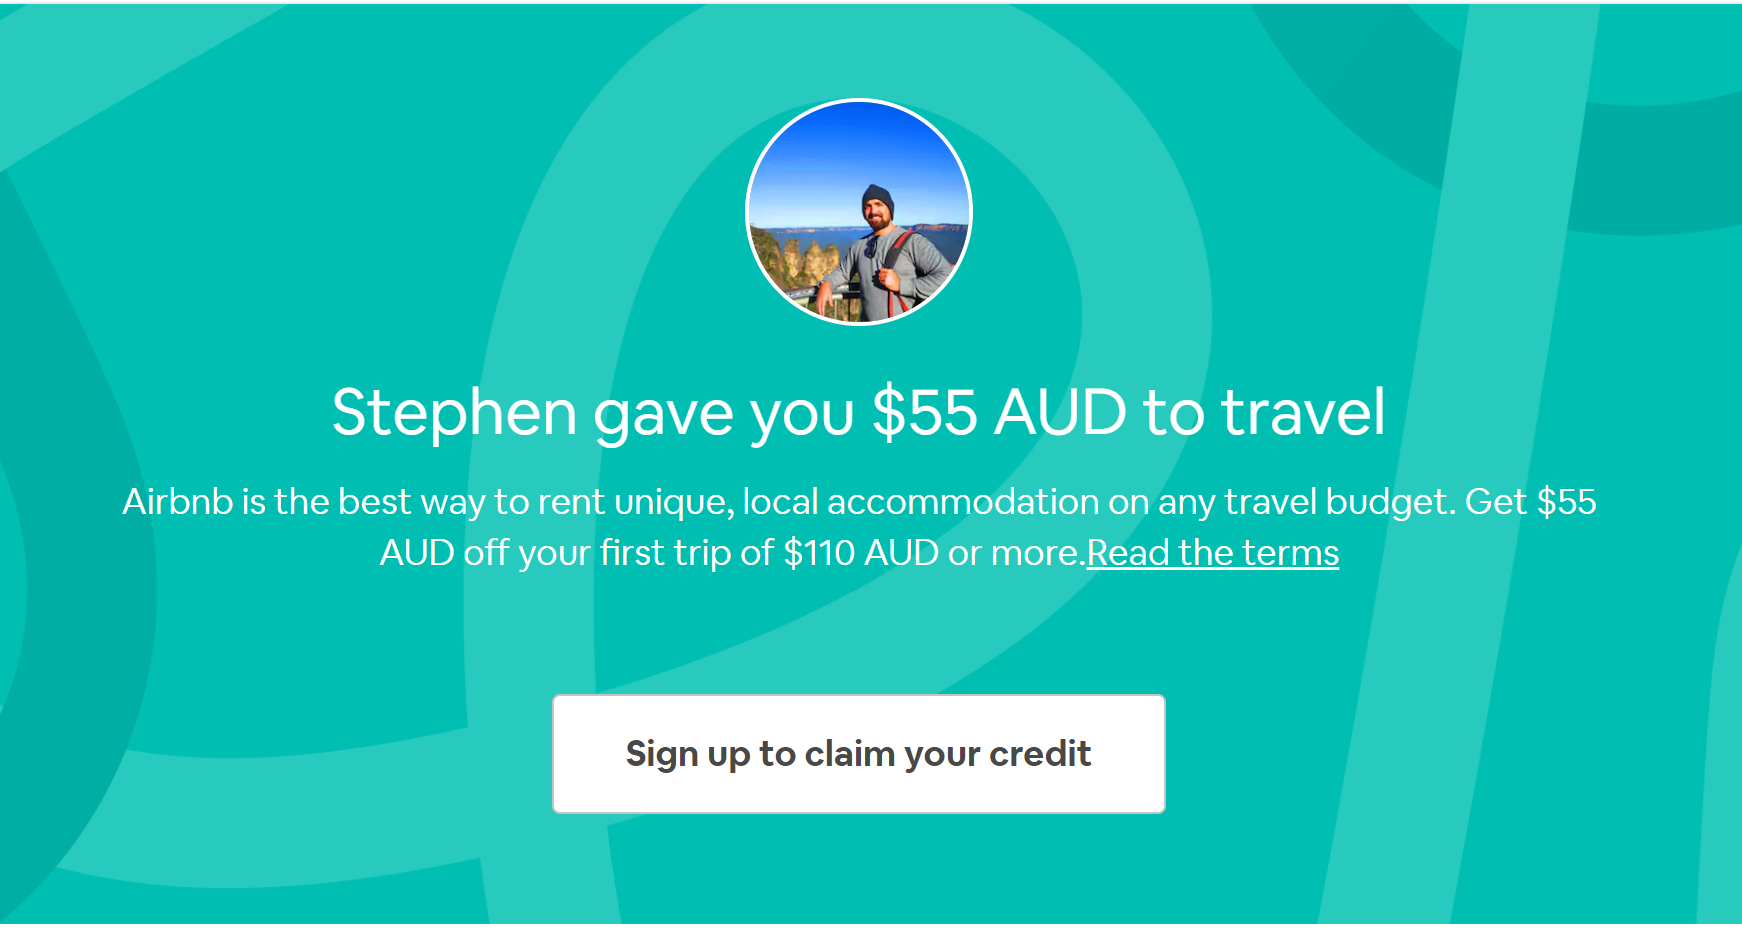 Airbnb coupon in Australia Get $55 AUD off your first adventure